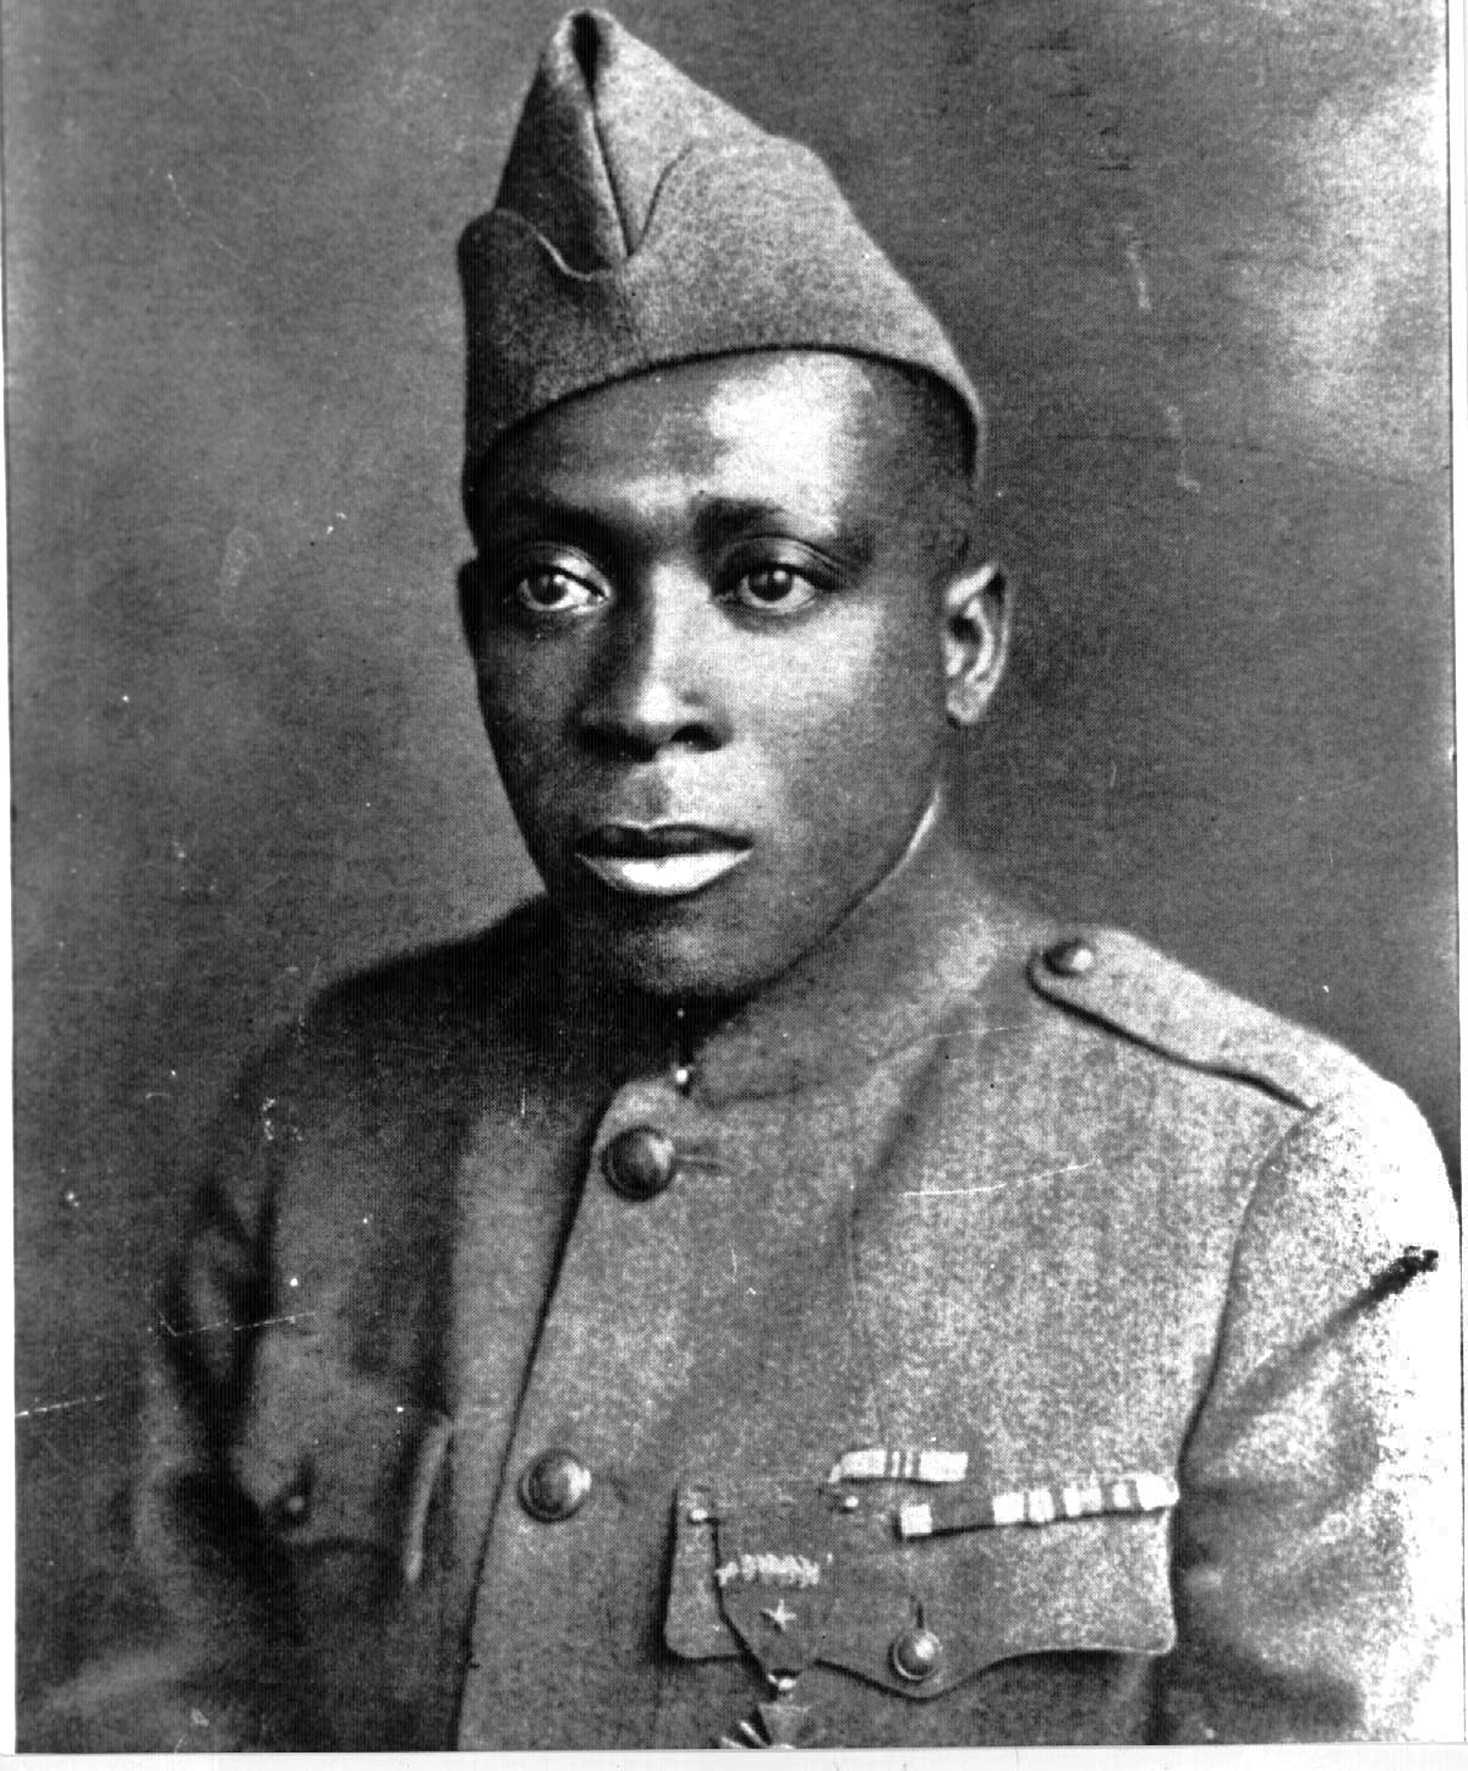 Wwi Hero Henry Johnson Of Albany On Verge Of Medal Of